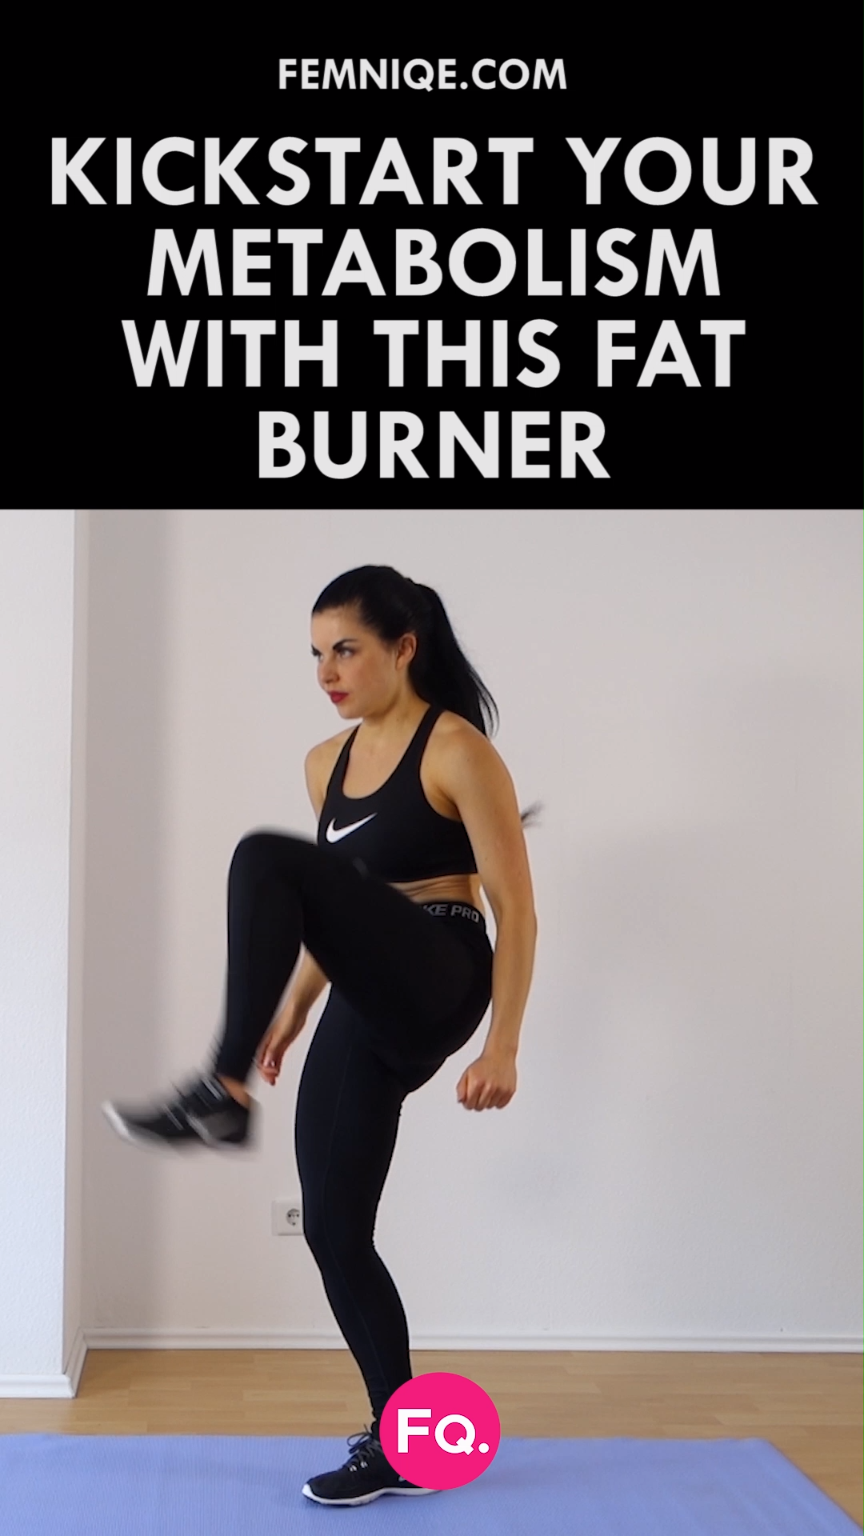 For this workout you will be using multiple joints throughout the movement therefore maximizing calorie burn. When you use multiple joints during a workout it requires more energy throughout your body. That's good news for those of us who want to melt stubborn body fat. On top of that this workout is quite fun to do! #Lovehandles #bellyfat #weightloss #bellyfatworkout #hiitworkout #cardioworkout